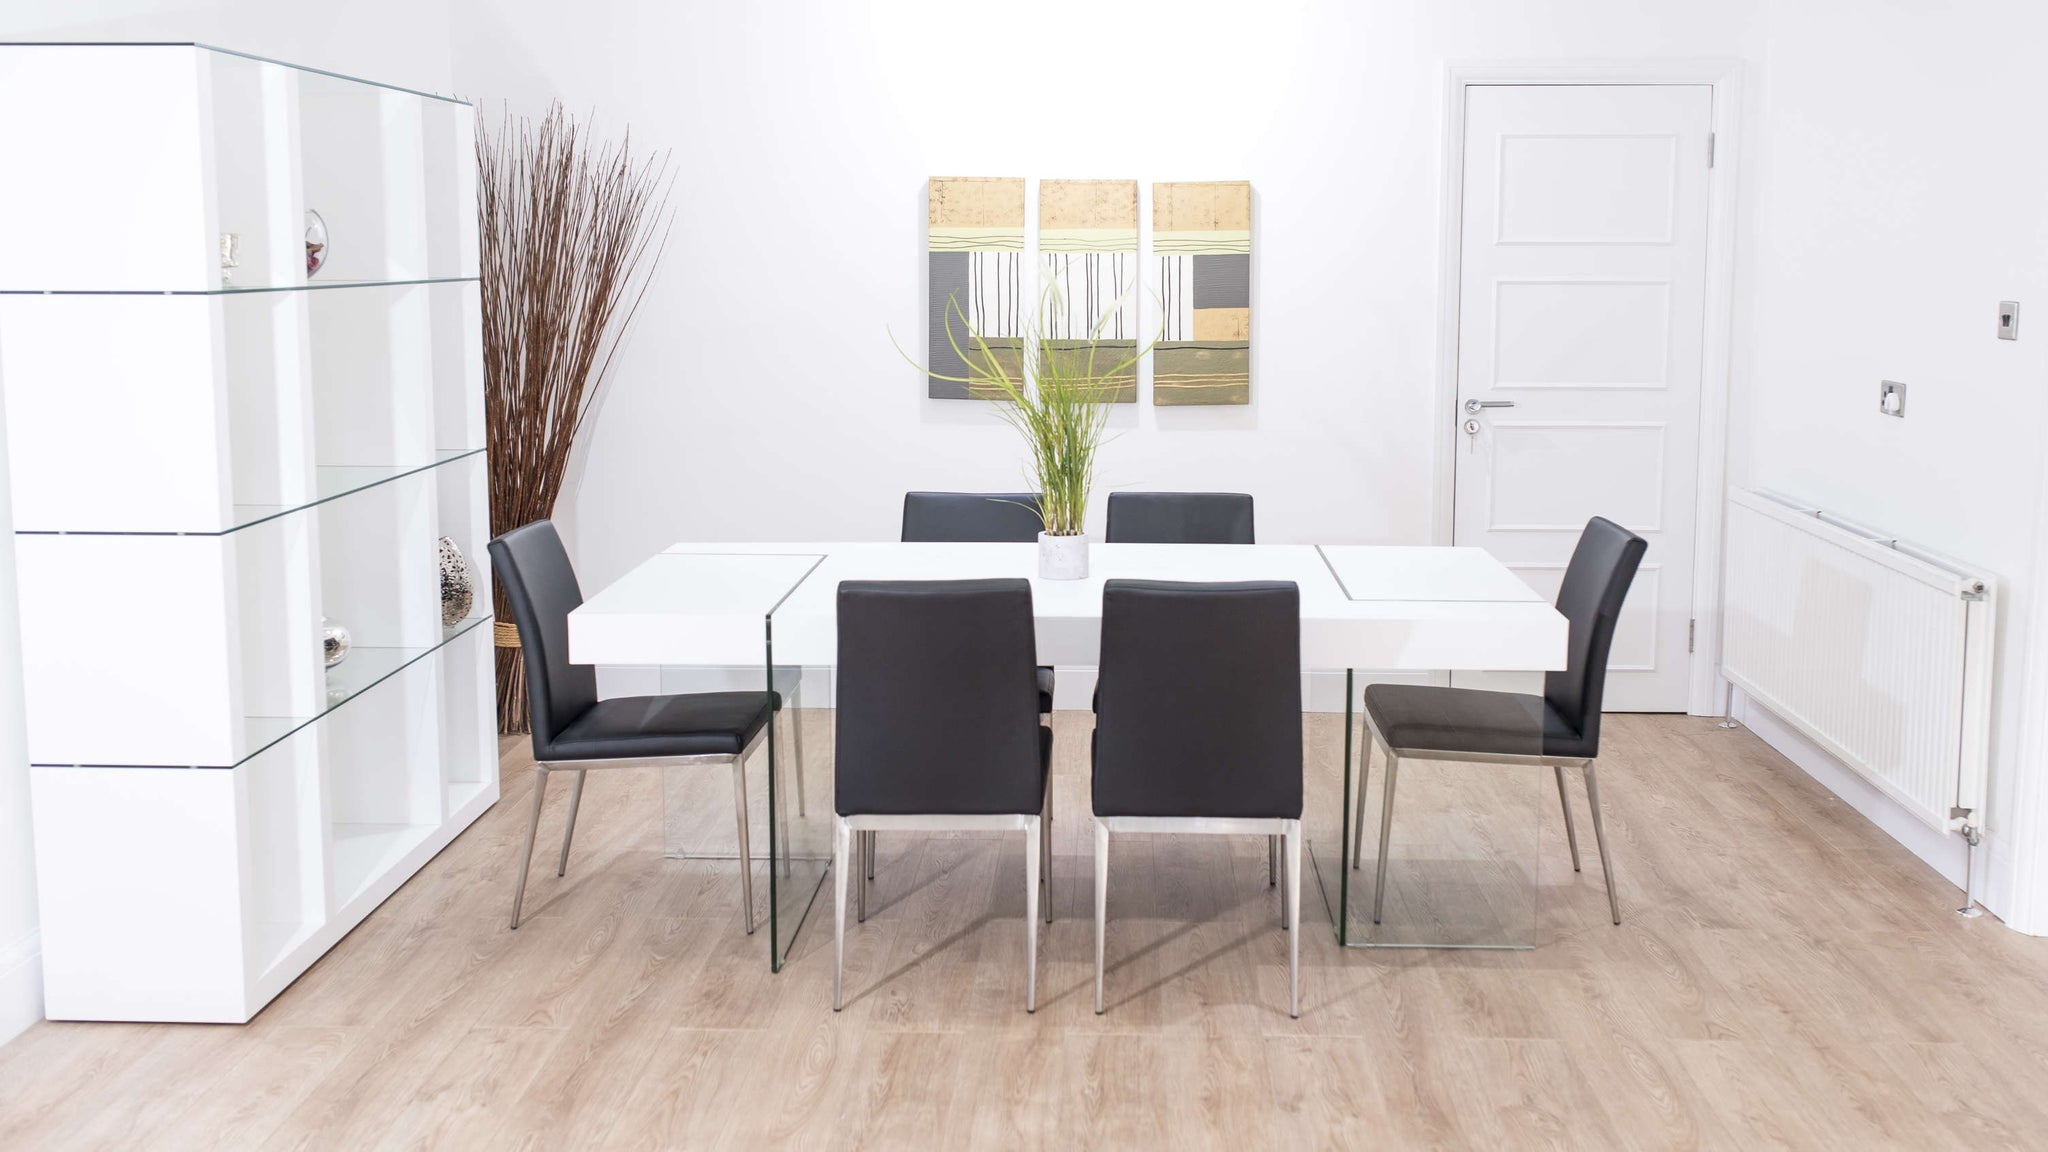 Stylish 6 Seater Dining Table and Black Dining Chairs